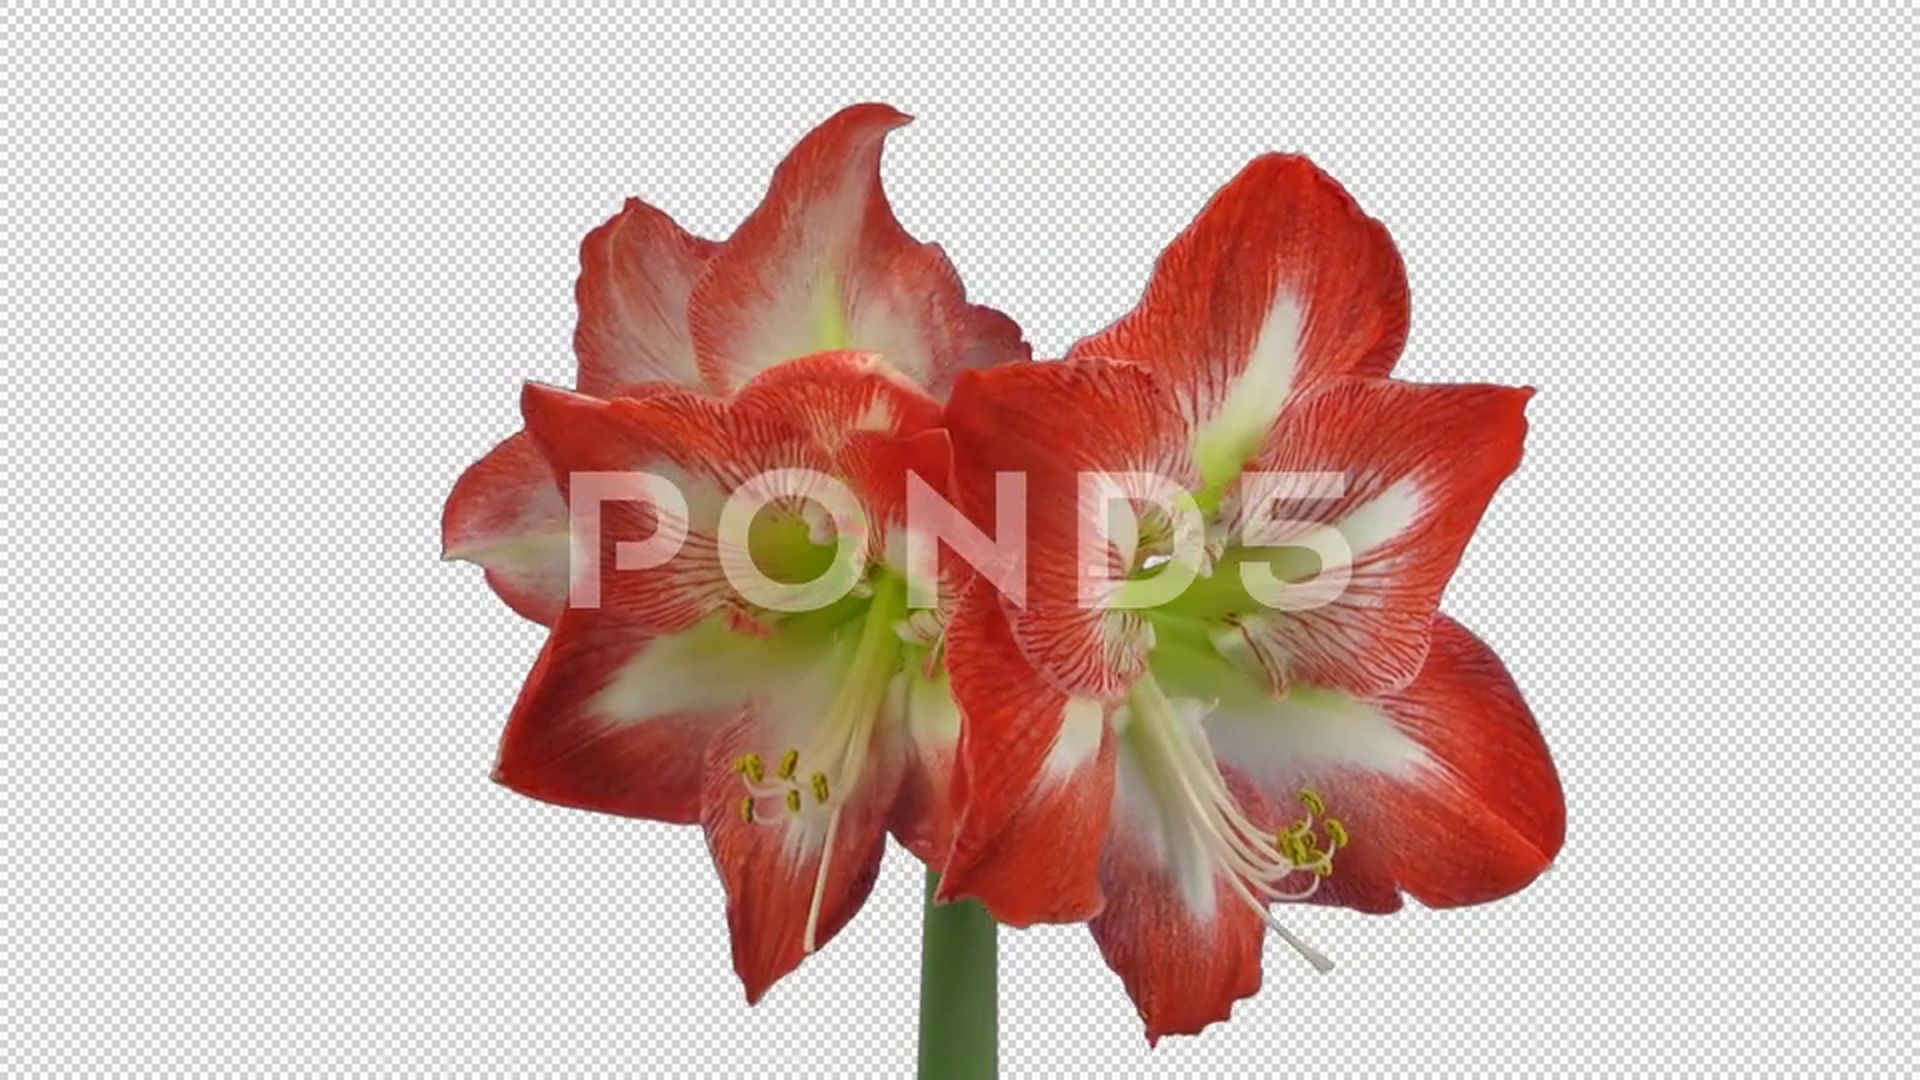 Growing And Rotating Minerva Amaryllis Flower 5b1 With Alpha Channel Stock Footage Amaryllis Flower Minerva Gr Amaryllis Flowers Amaryllis Amaryllis Christmas